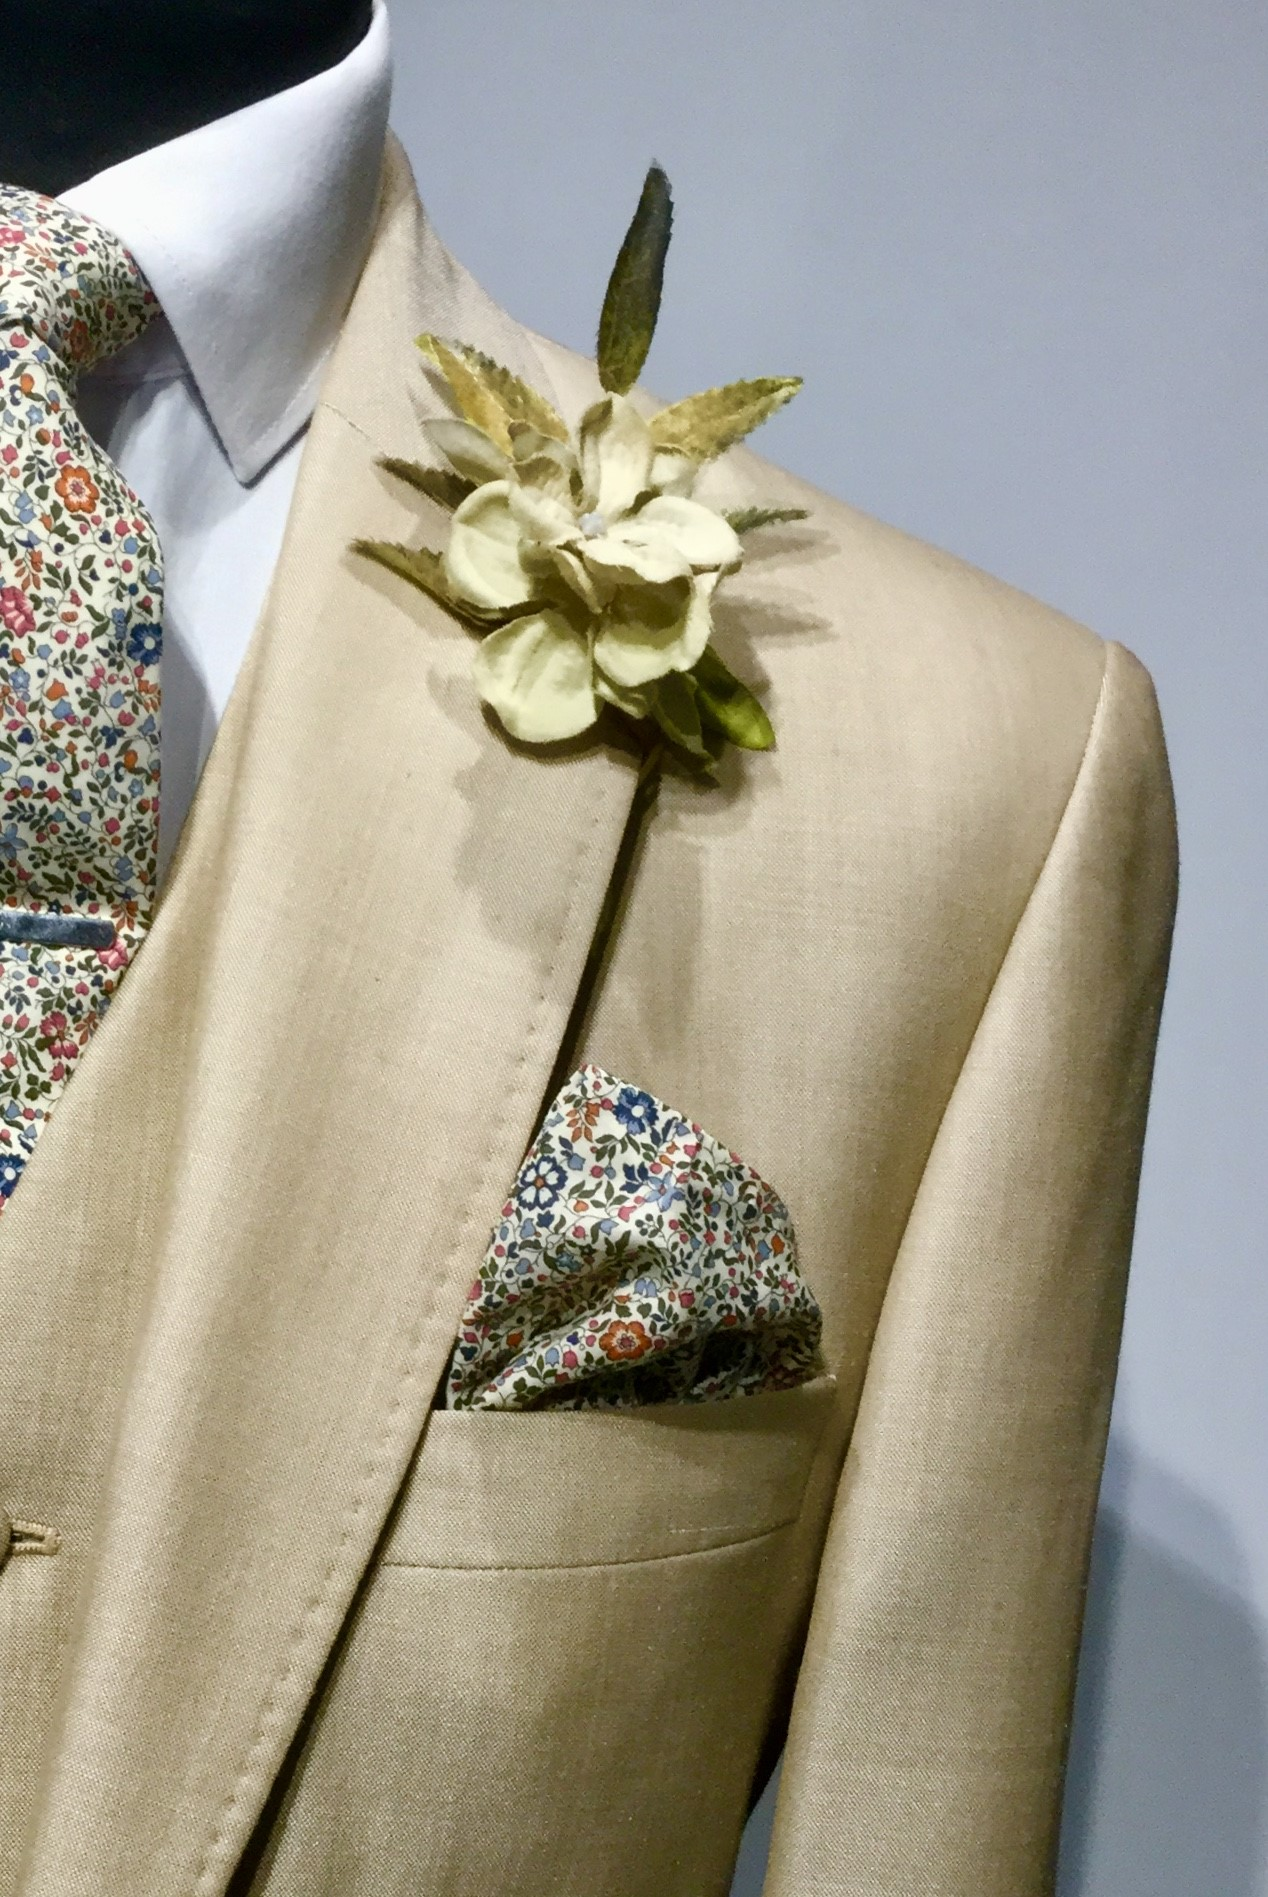 Light Fawn Mens Wedding Hire Suit with Liberty tie by Black Tie Menswear, Berkshire